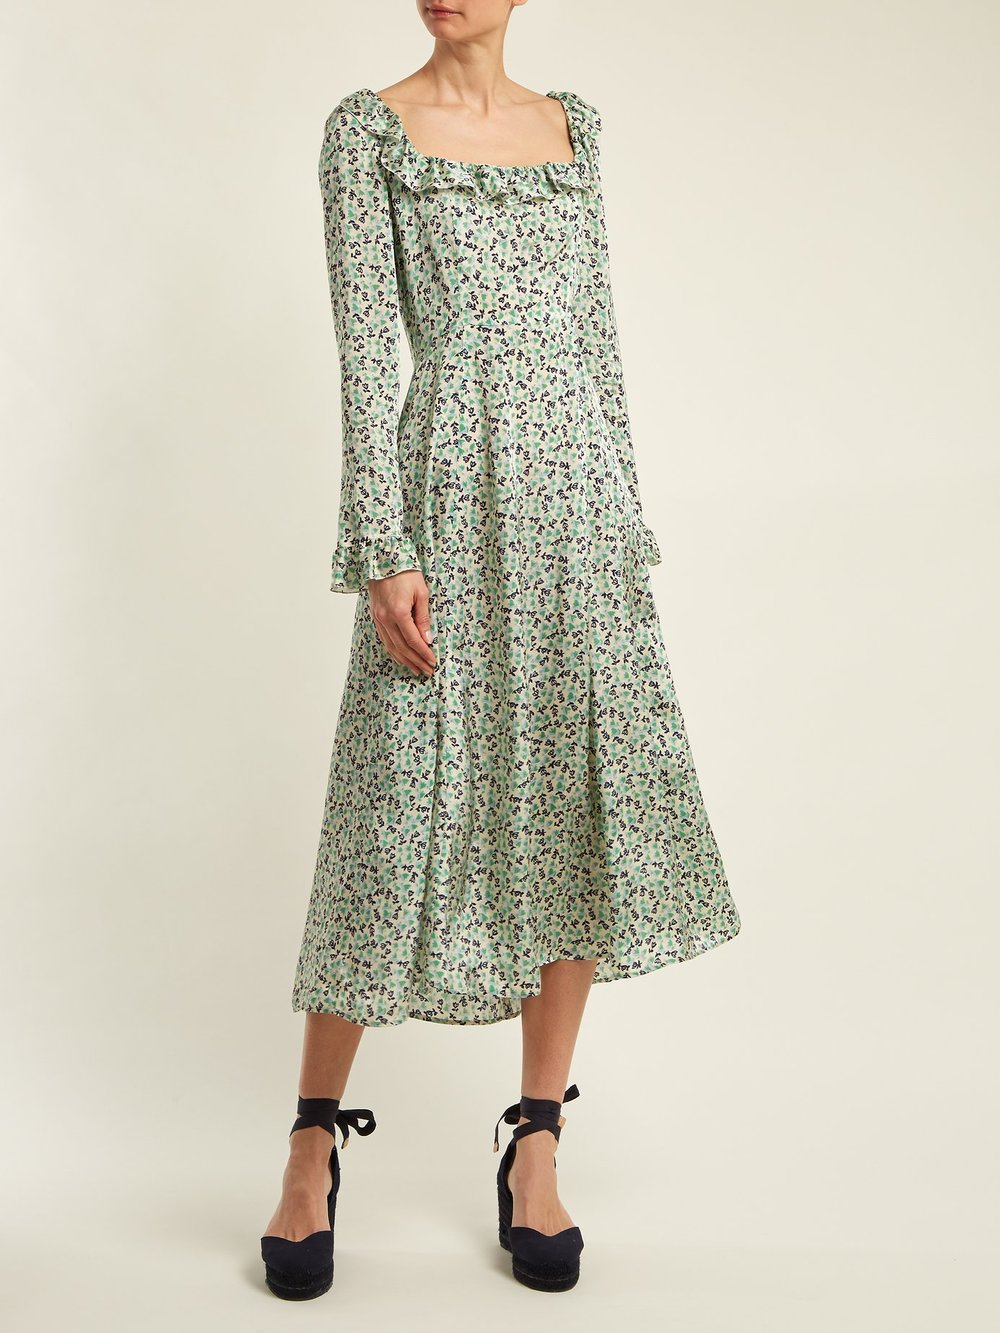 Alexachung - Floral-Print Square-Neck DressCombines delicate florals and a ruffled trim to charming effect in this midi-length emerald-green, blue and cream dress.